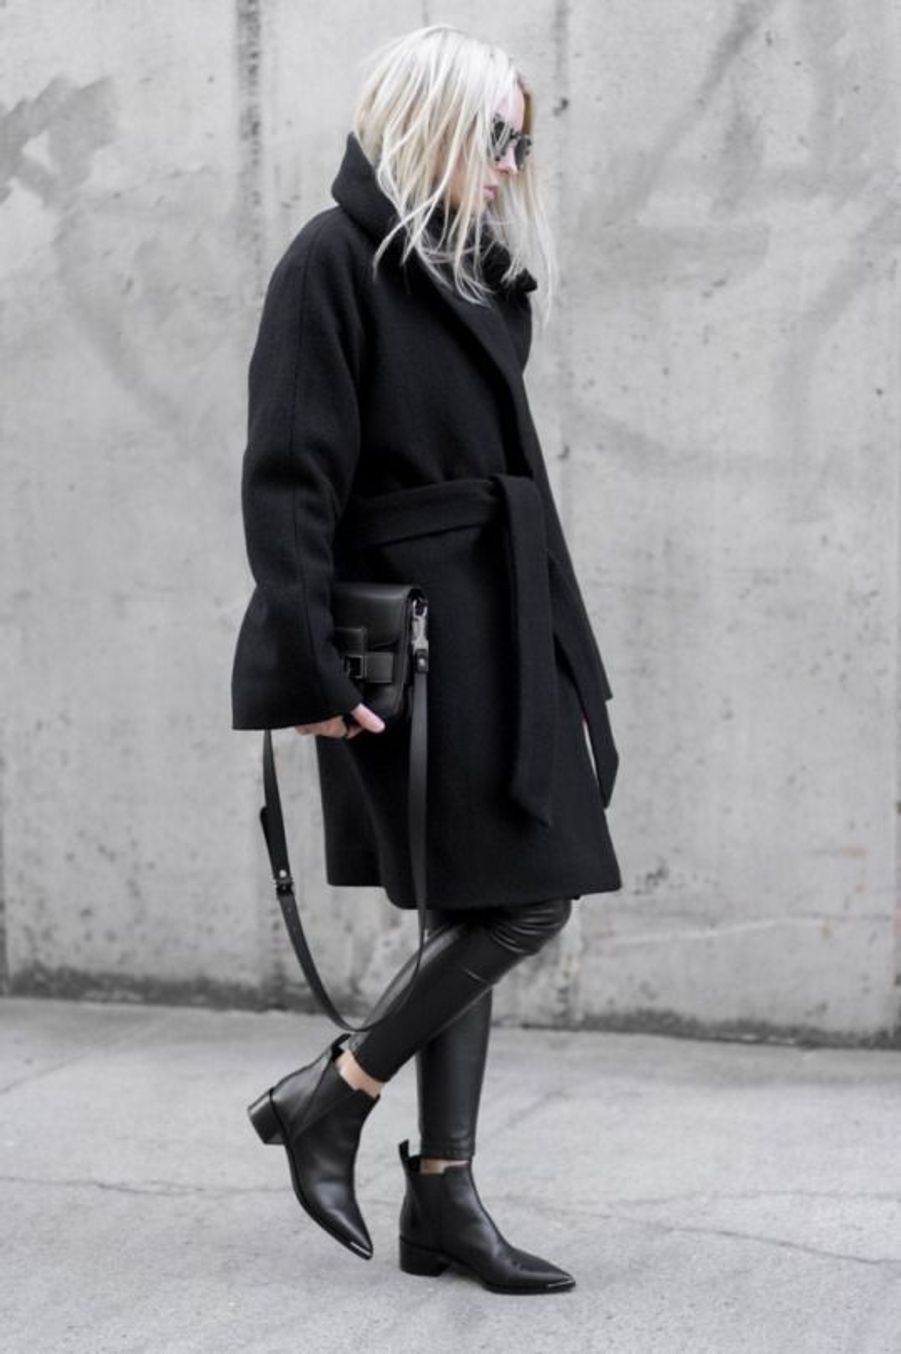 Manteau noir https://www.pinterest.fr/pin/302022718740764988/